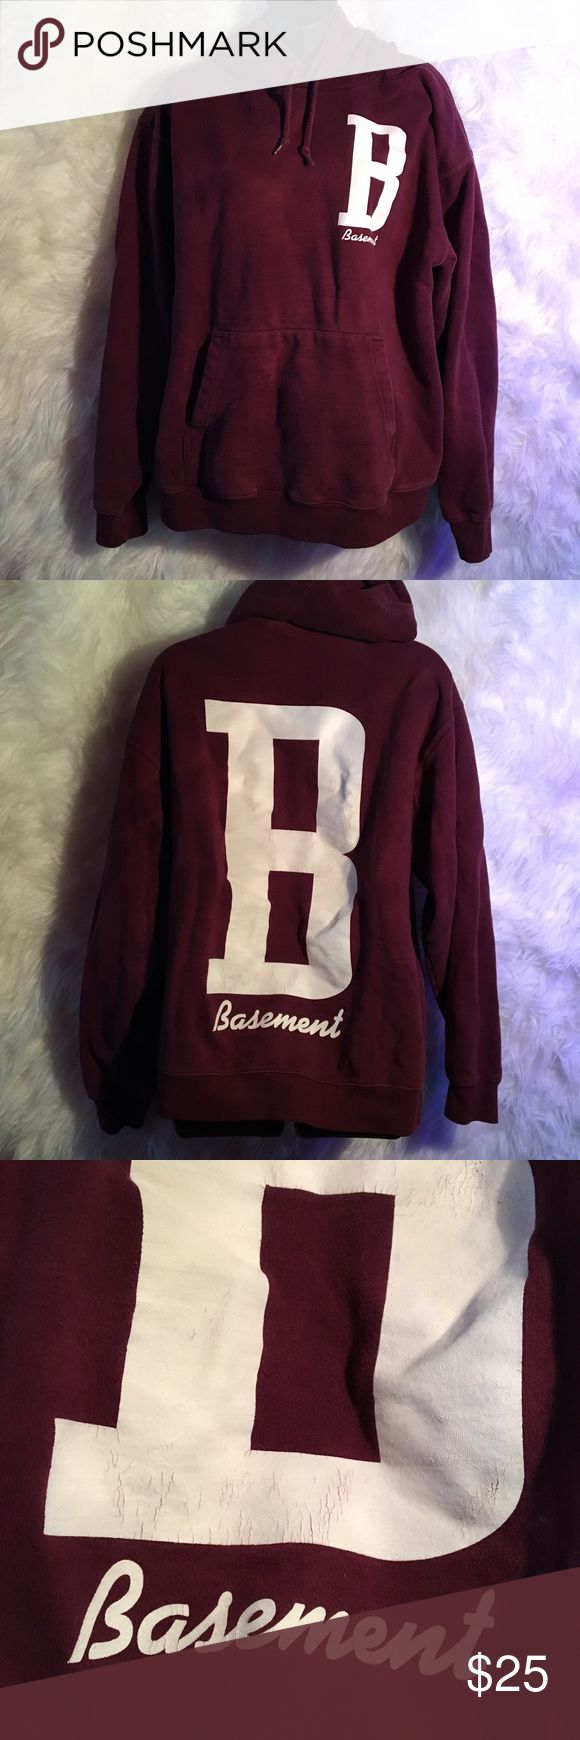 Basement Band Hoodie Hoodie by the band Basement. No flaws except a tiny bleach stain on the left arm. Size L. All clothing sold will be washed and ironed before shipment! Cold Cuts Merch Tops Sweatshirts & Hoodies